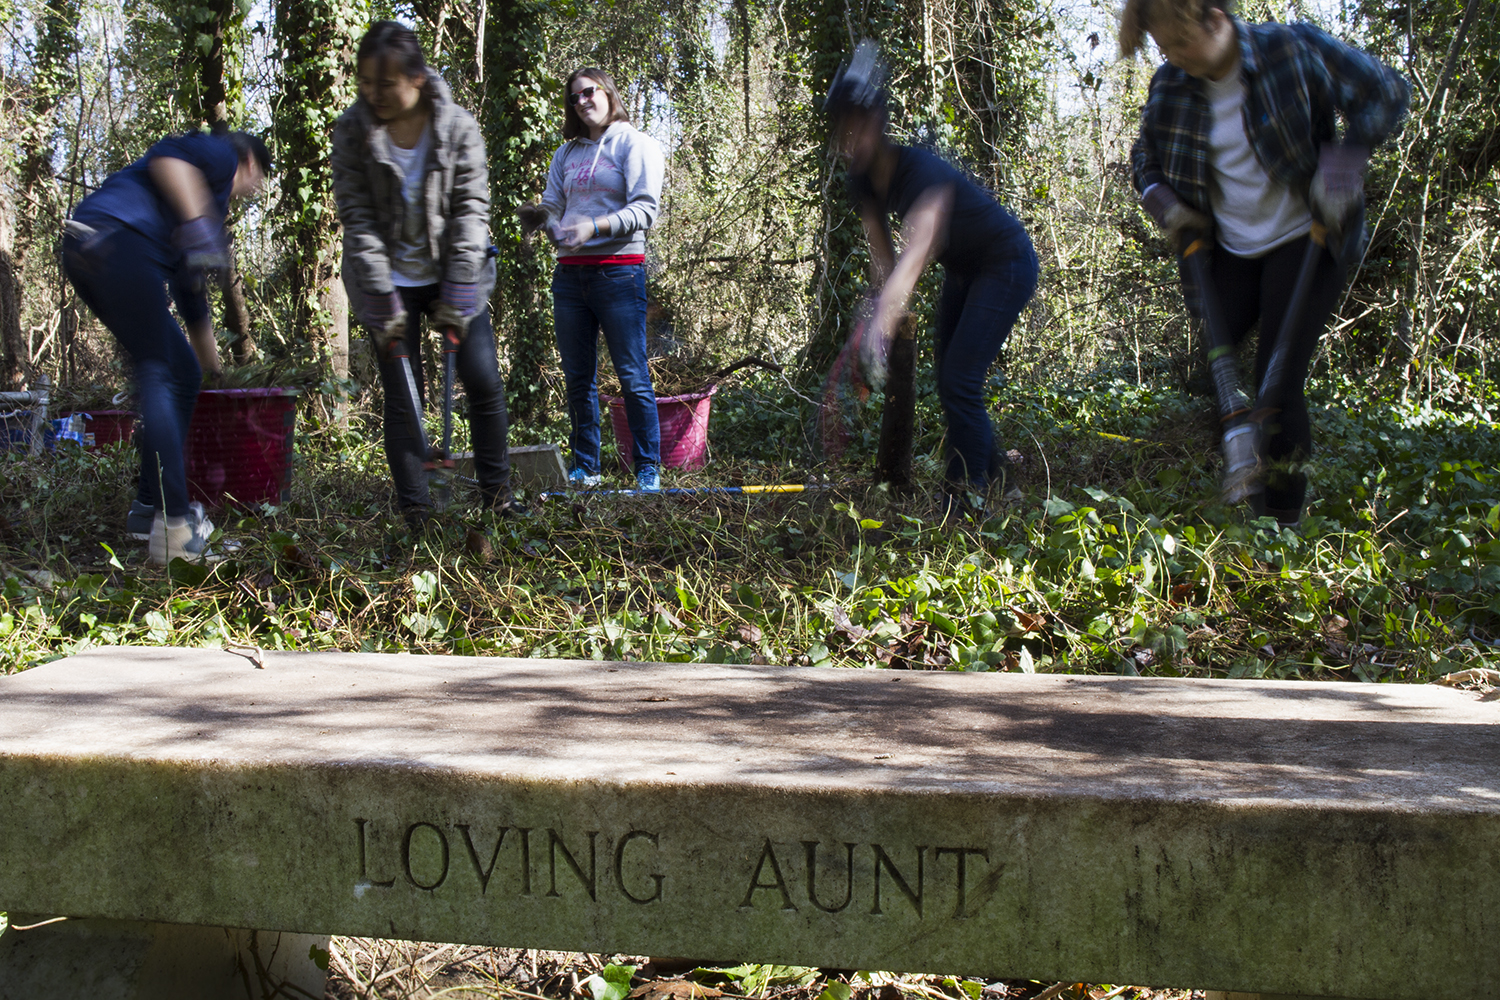 University of Richmond students, members of Alpha Phi Omega, clear undergrowth from graves during an East End Cemetery work day, January 2015. ©brianpalmer.photos 2015